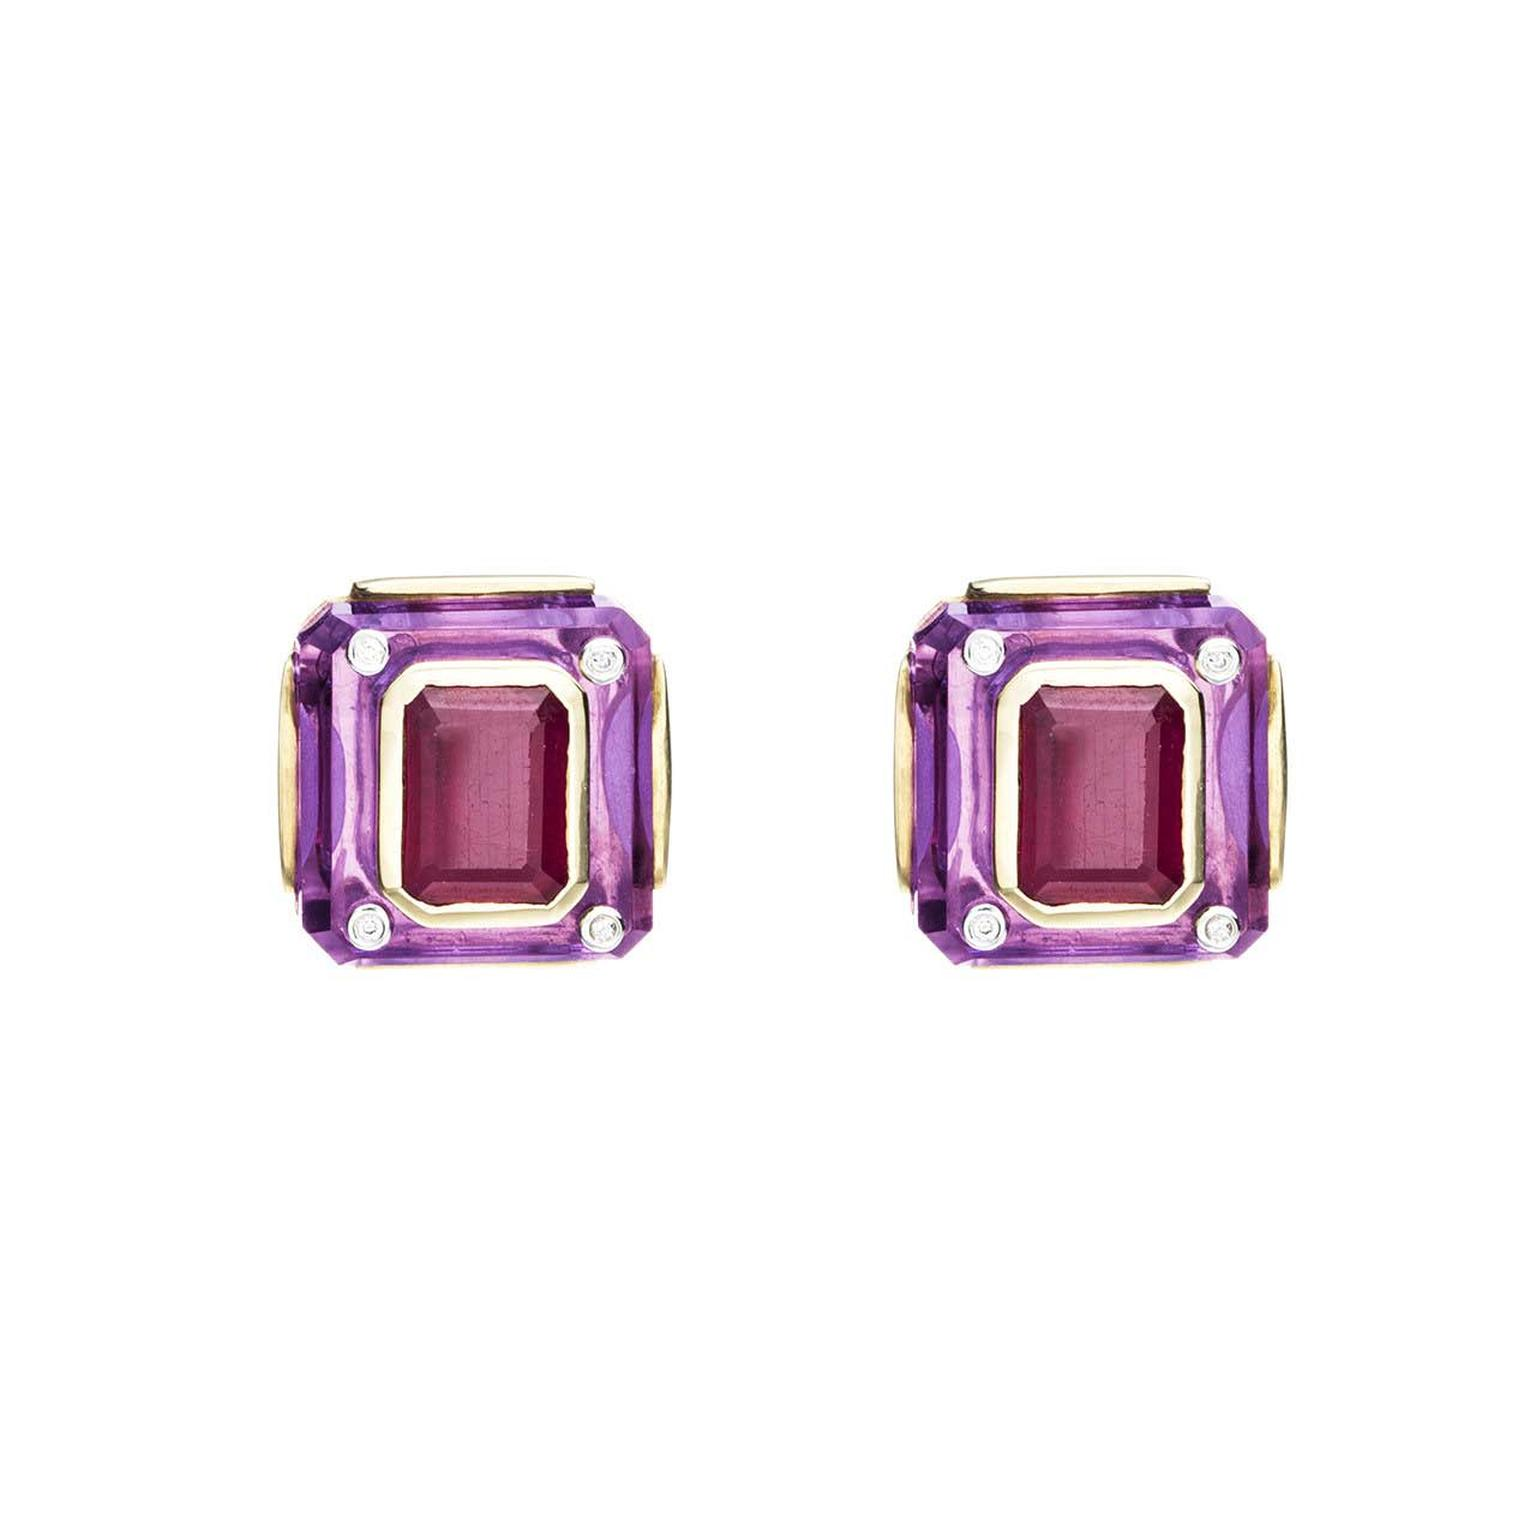 Kara Ross Cava earrings in amethyst and ruby